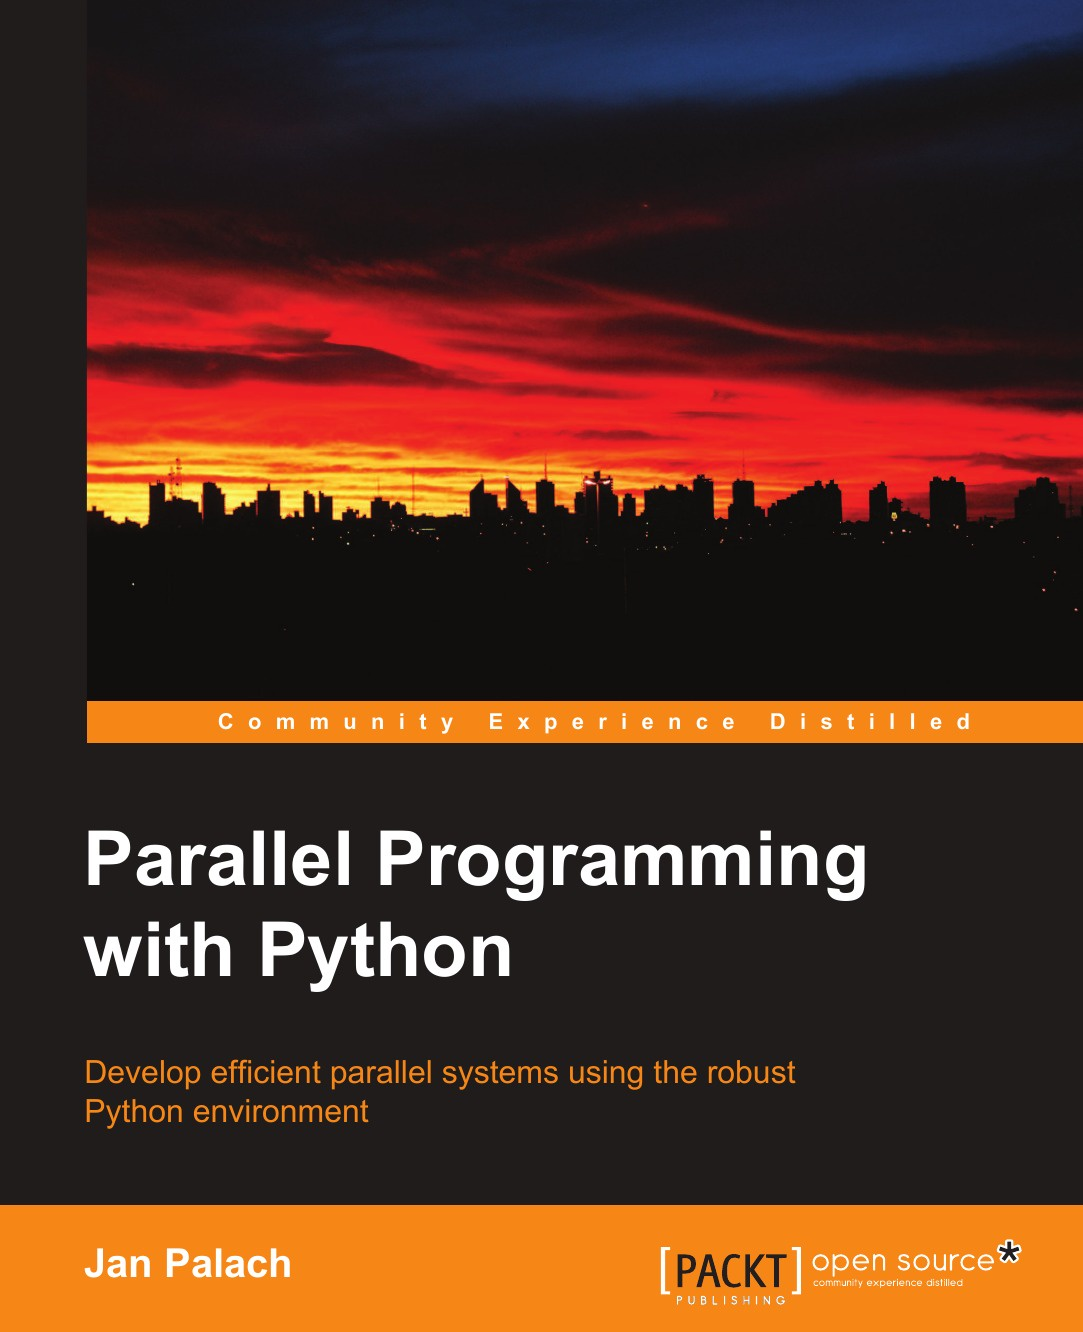 Jan Palach Parallel Programming with Python. Develop Efficient Parallel Systems Using the Robust Python Environment james payne beginning python using python 2 6 and python 3 1